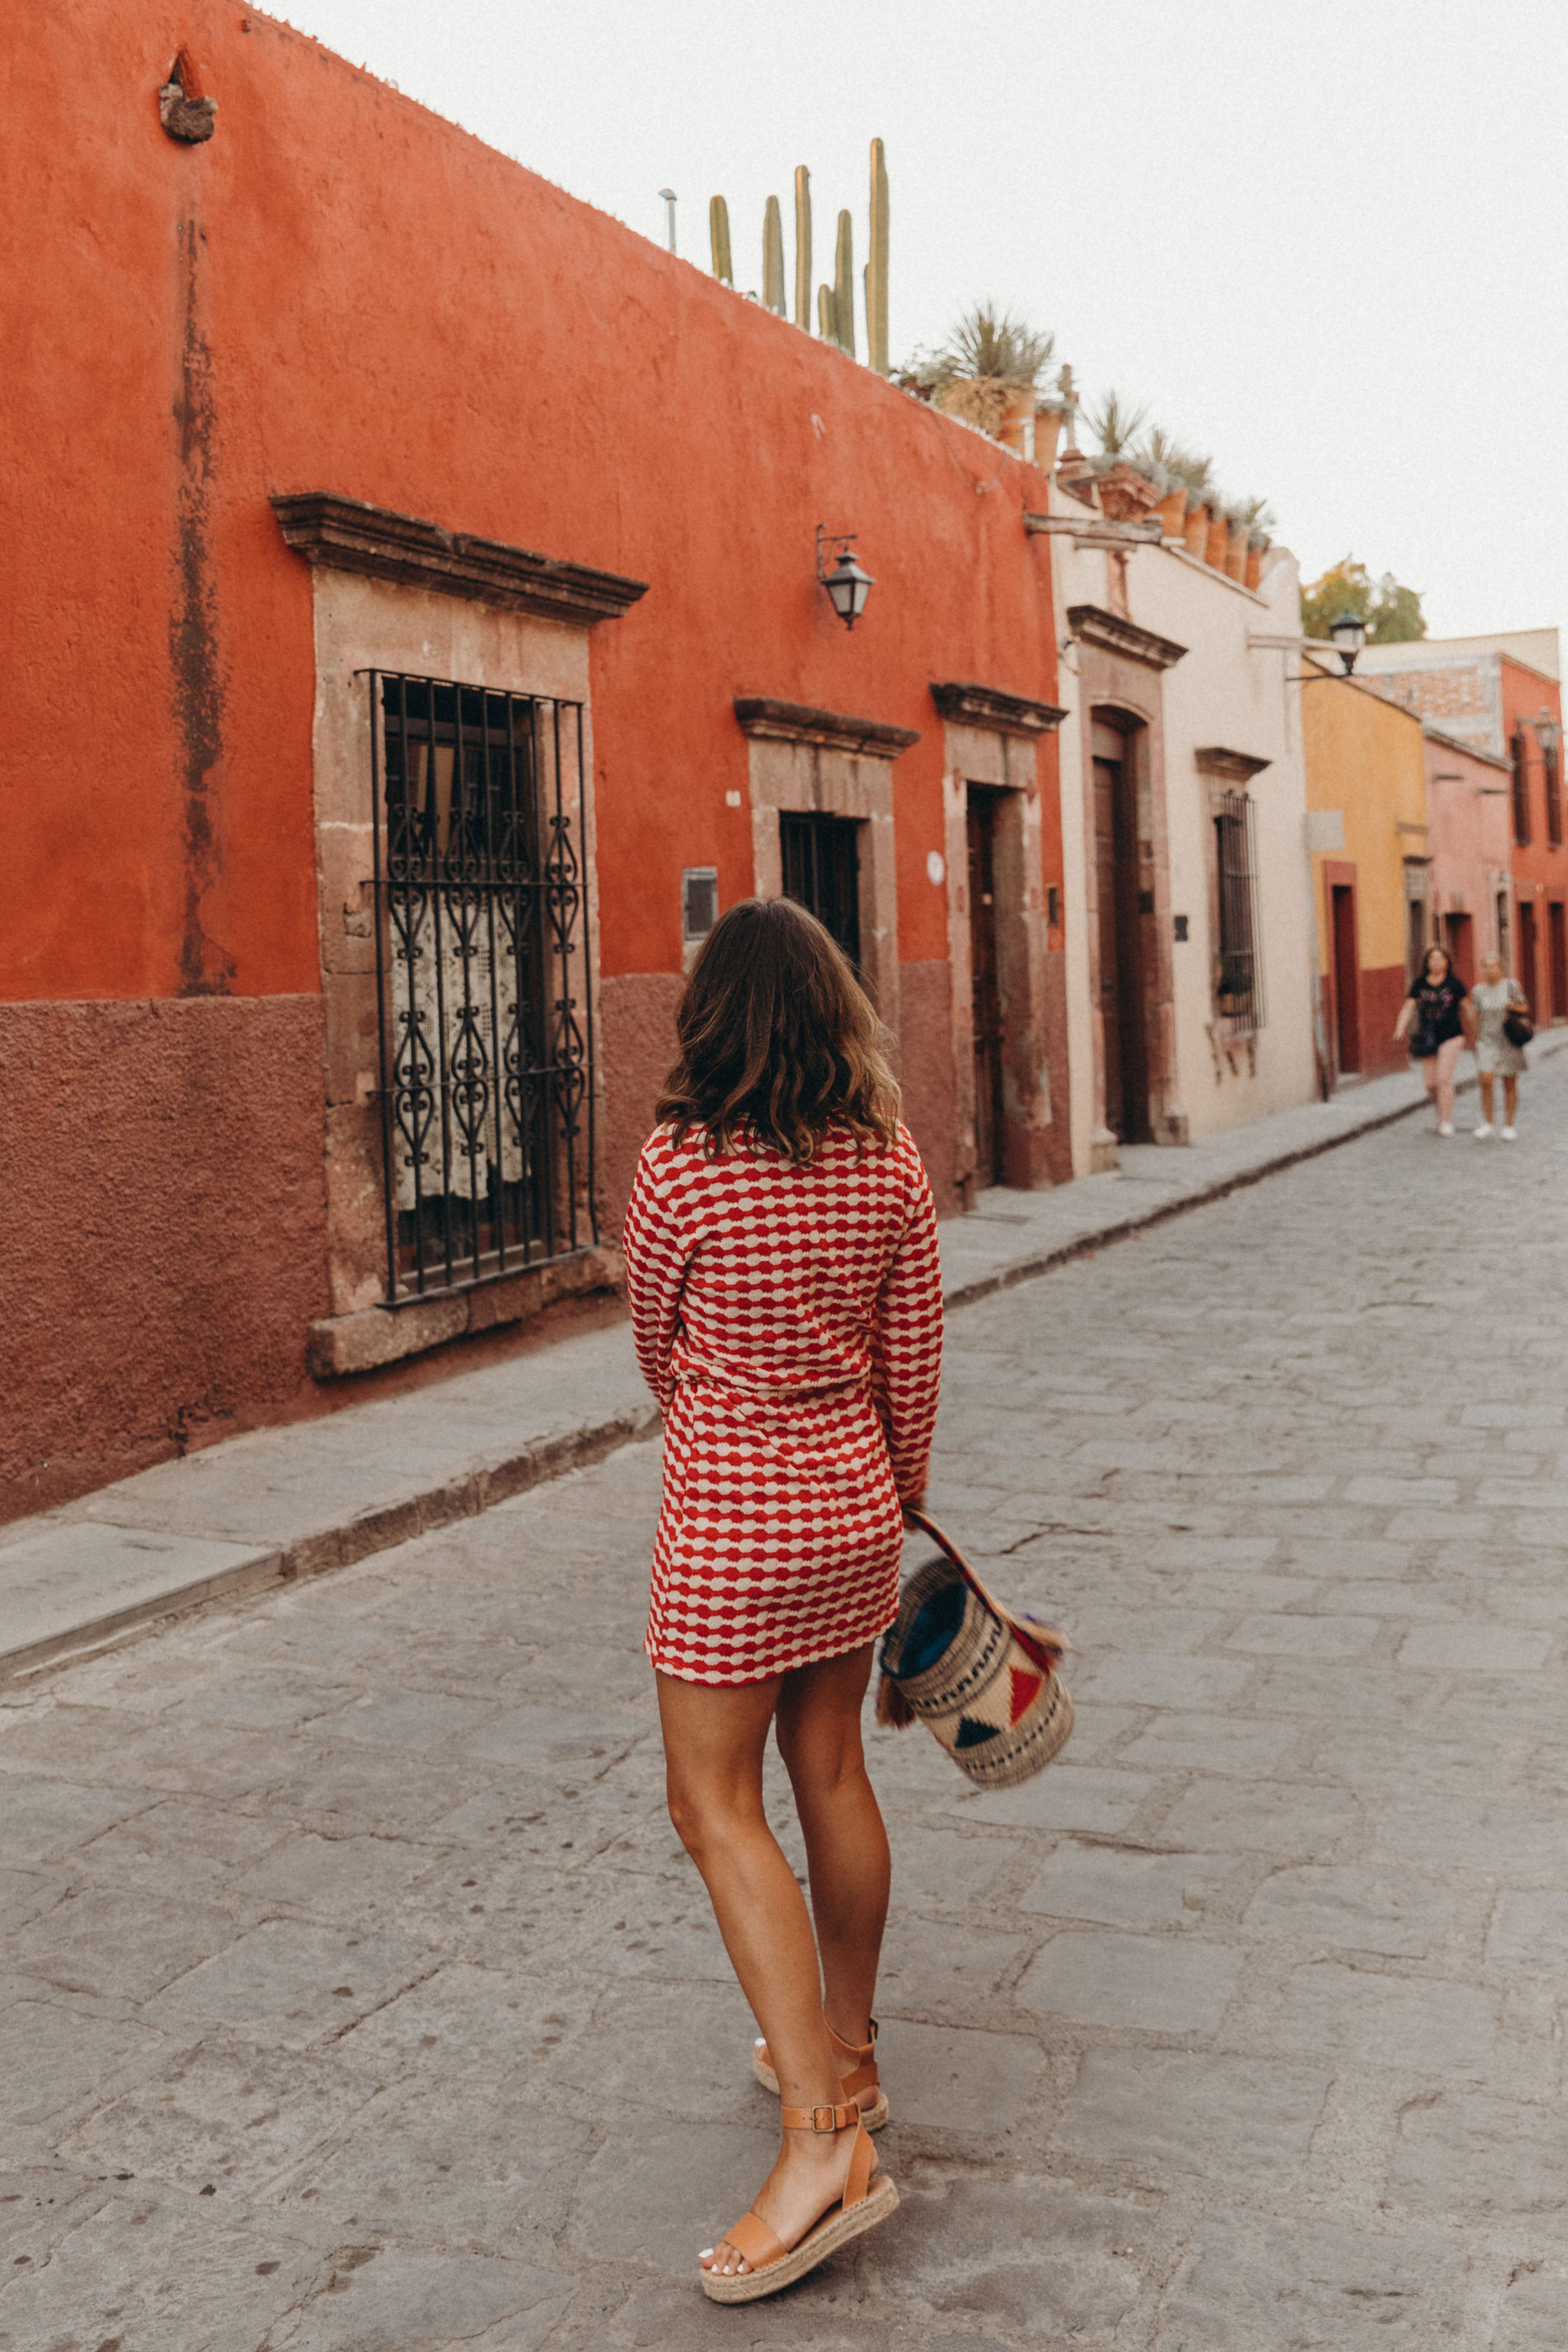 Sara of Collage Vintage wearing a red dress from Zara and leather espadrilles at San Miguel de Allende